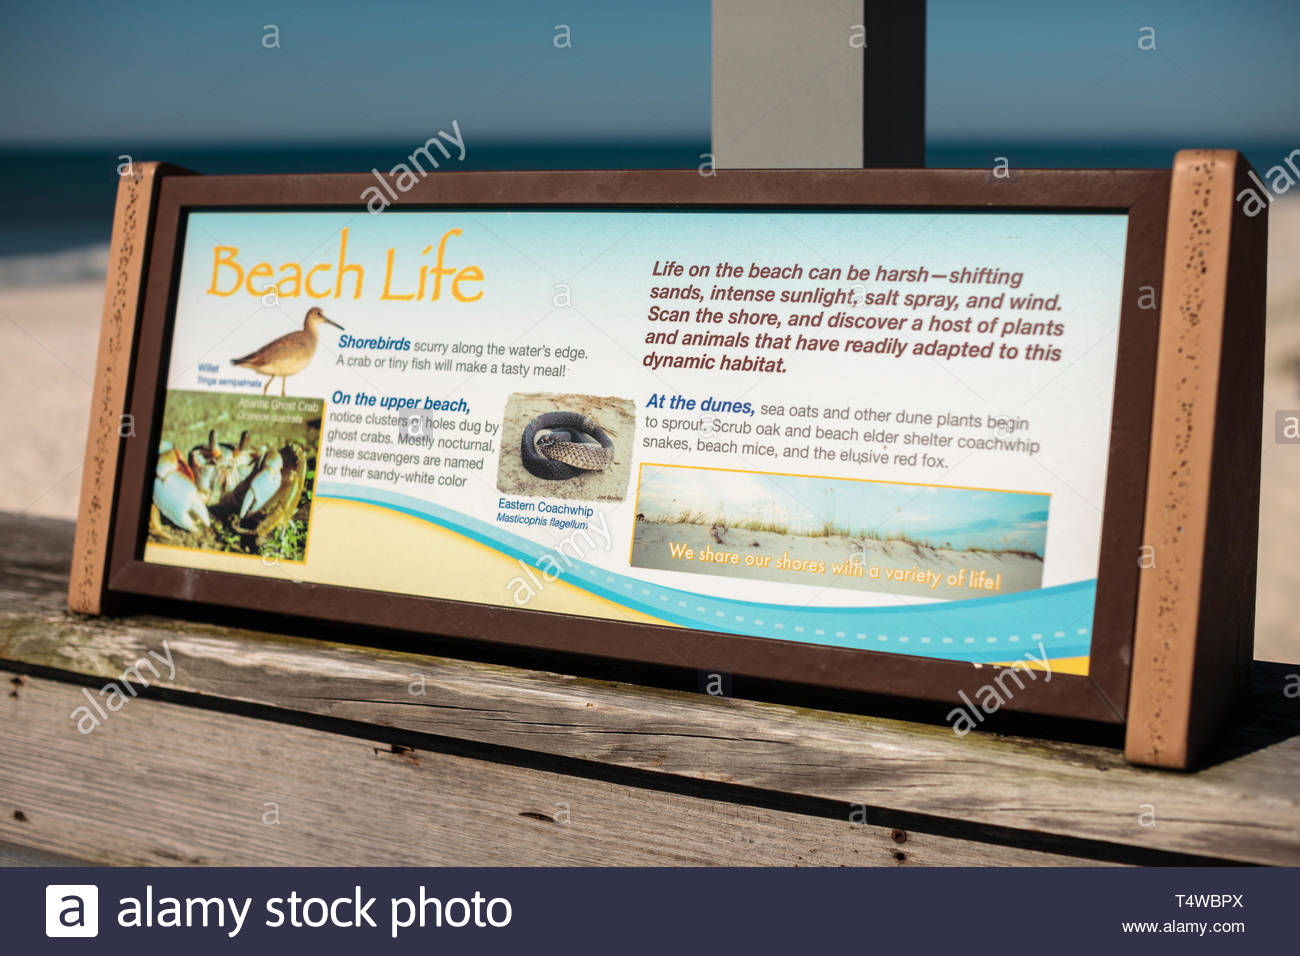 Beach life informational sign along the fishing pier at Gulf State Park, Gulf Shores, Alabama Stock Photo